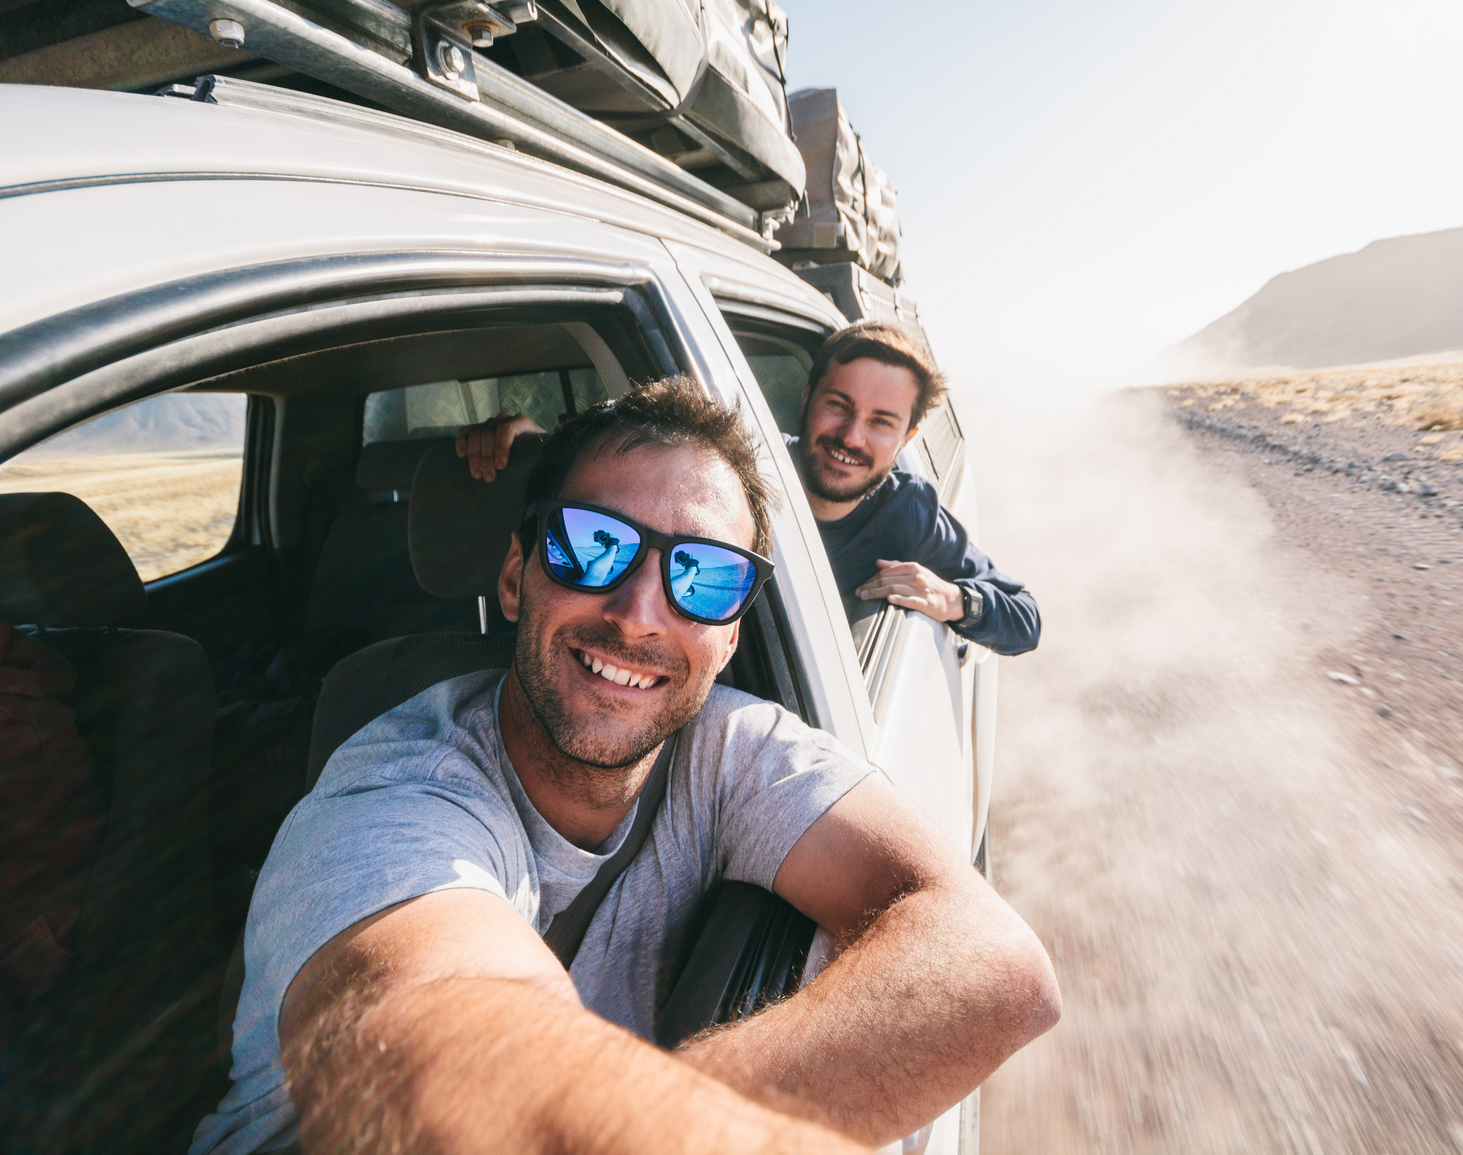 Adventure travel - Two young men taking a self portrait through